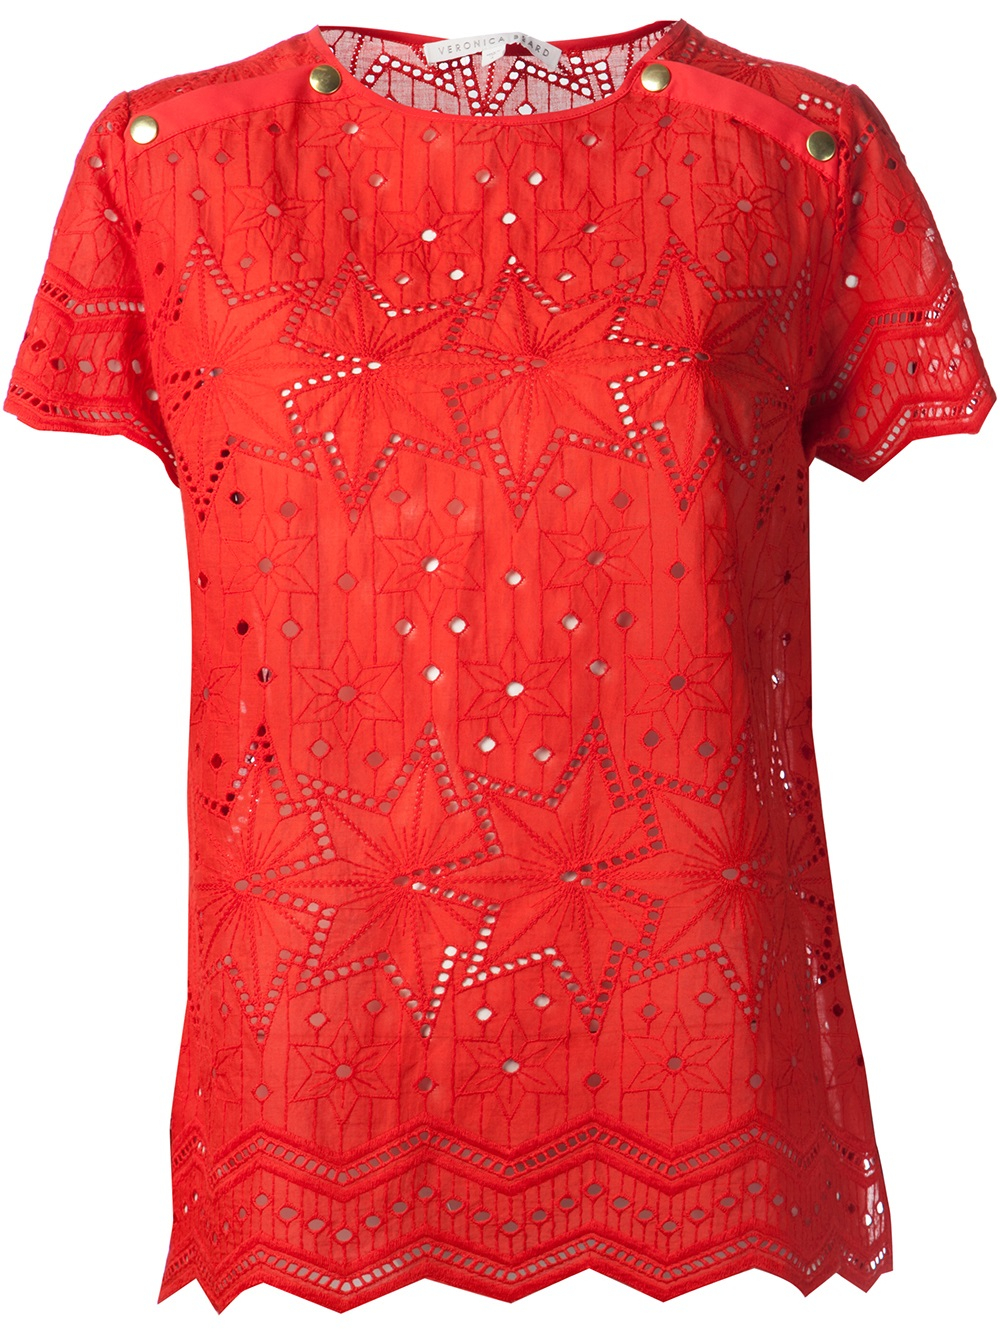 257d2651fc667e Lyst - Veronica Beard Eyelet Blouse in Red